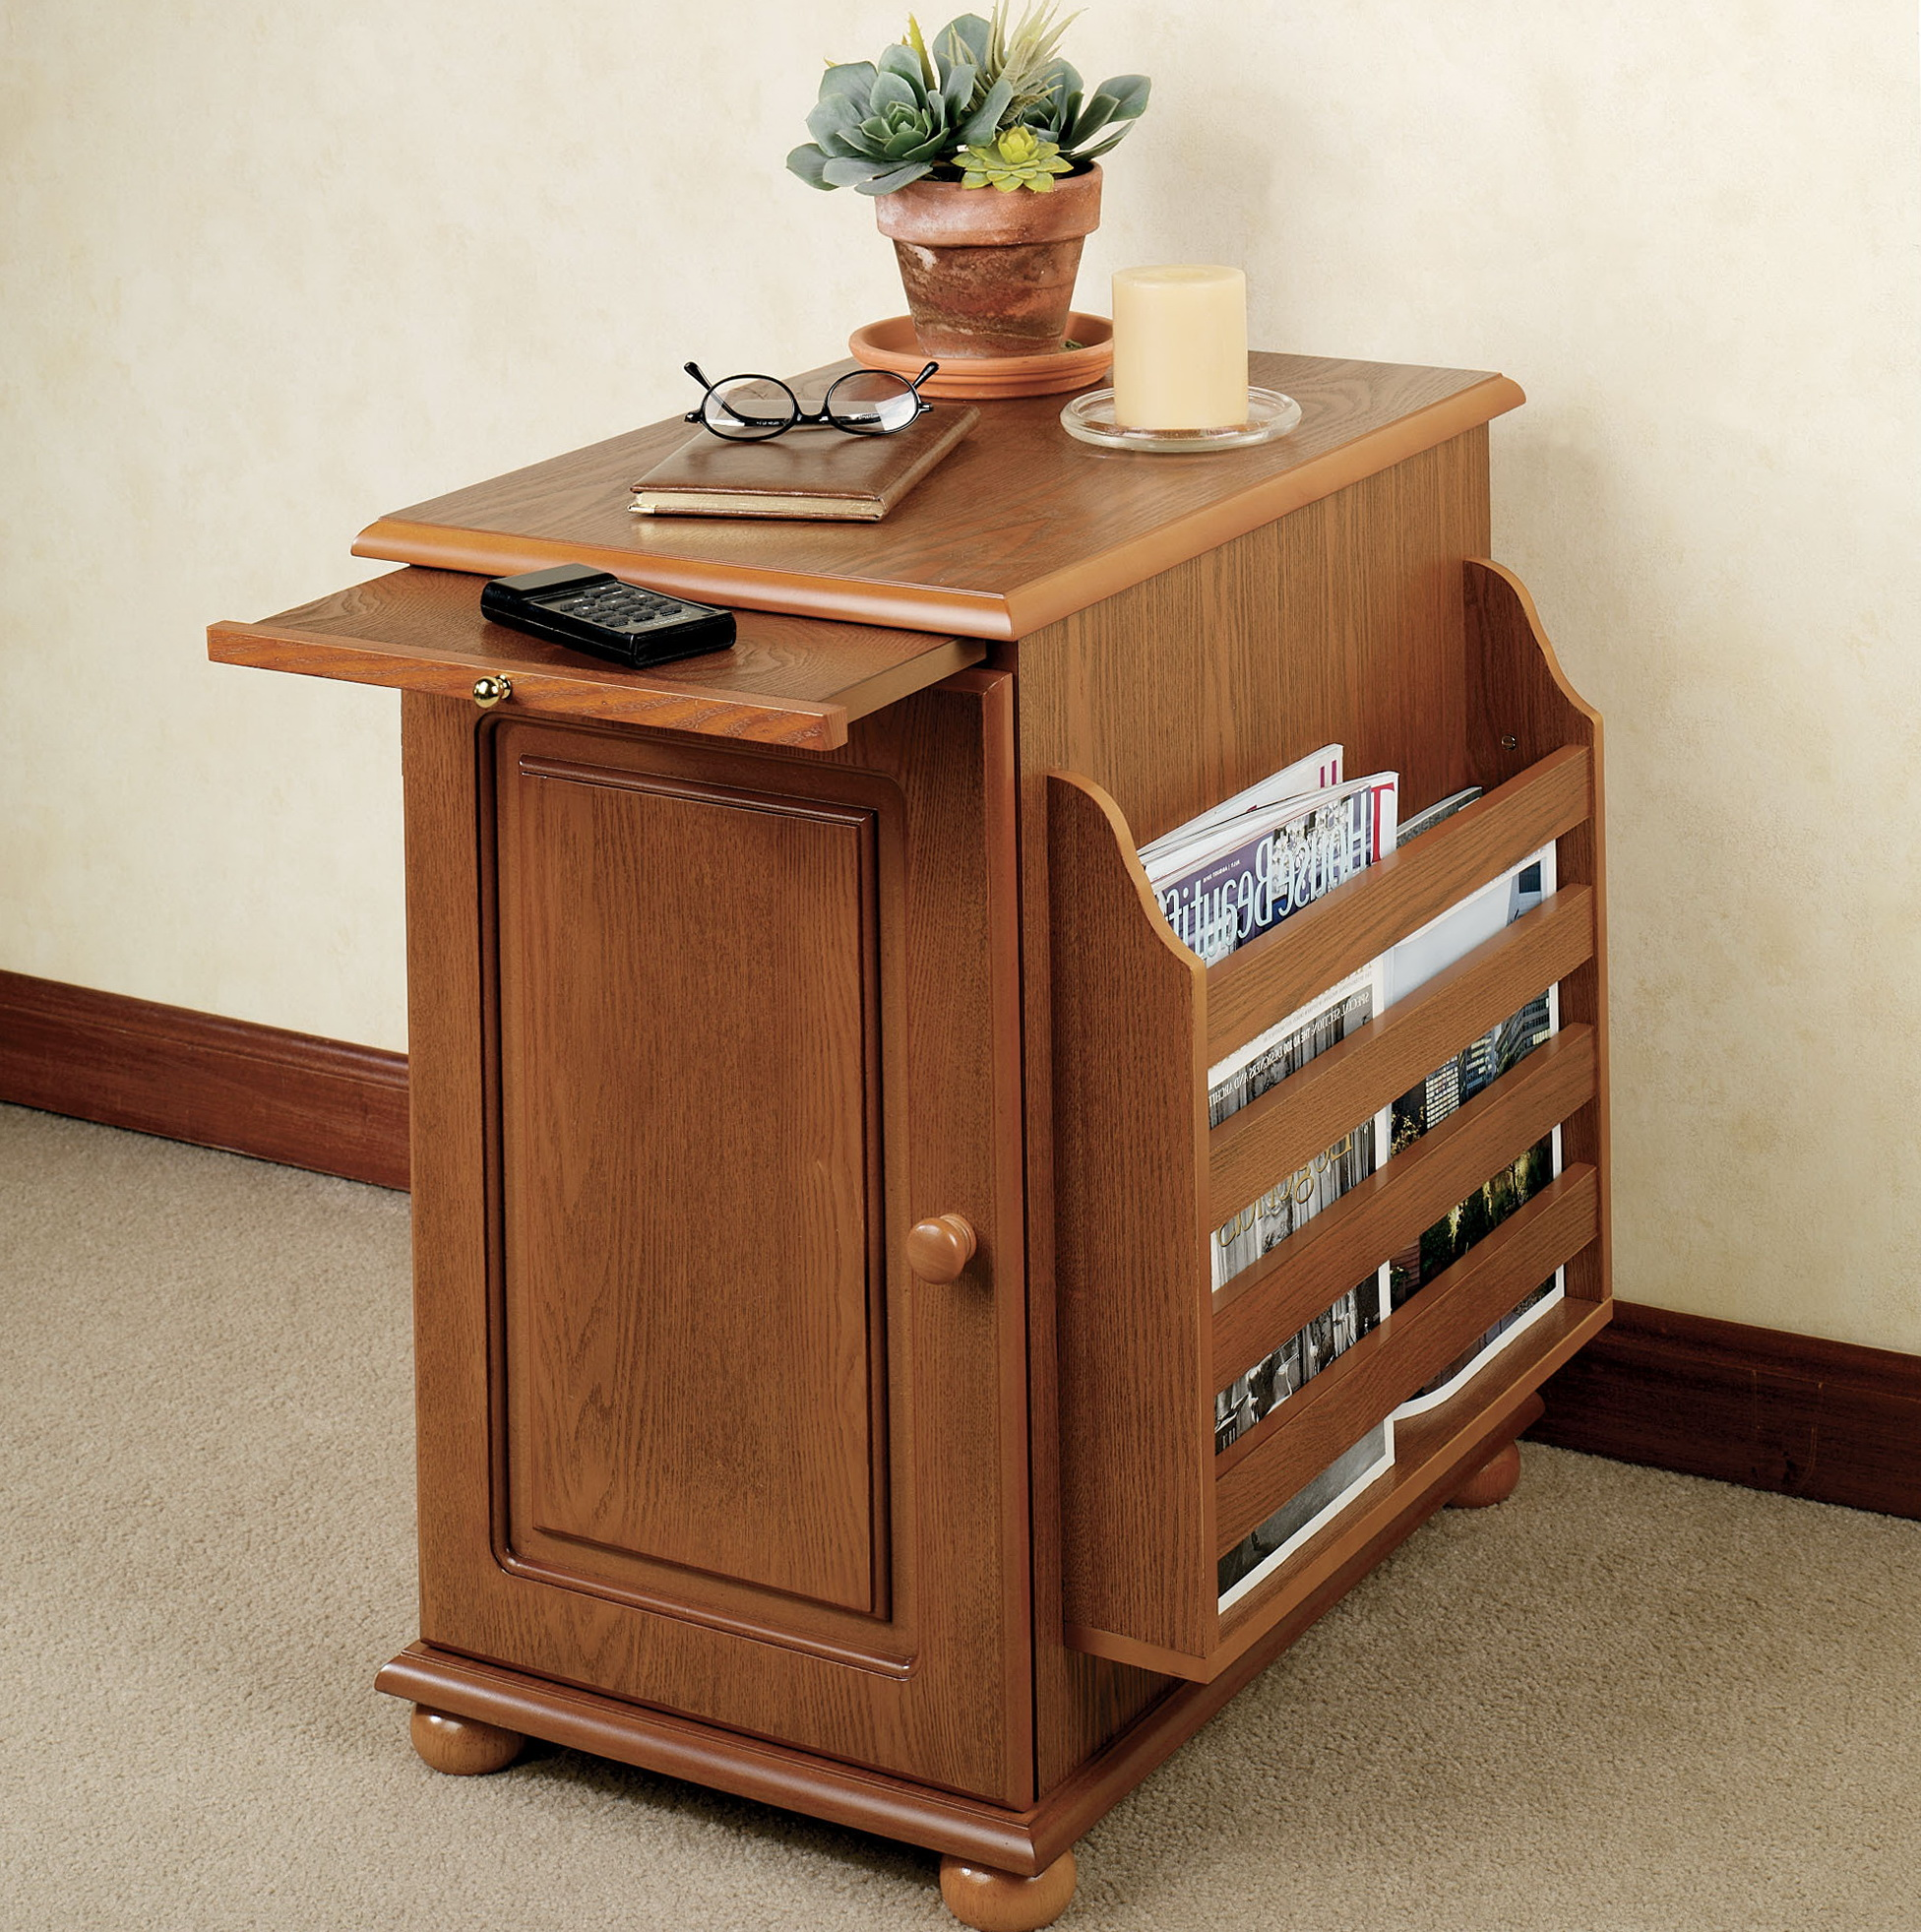 Recliner Side Table With Storage Home Design Ideas